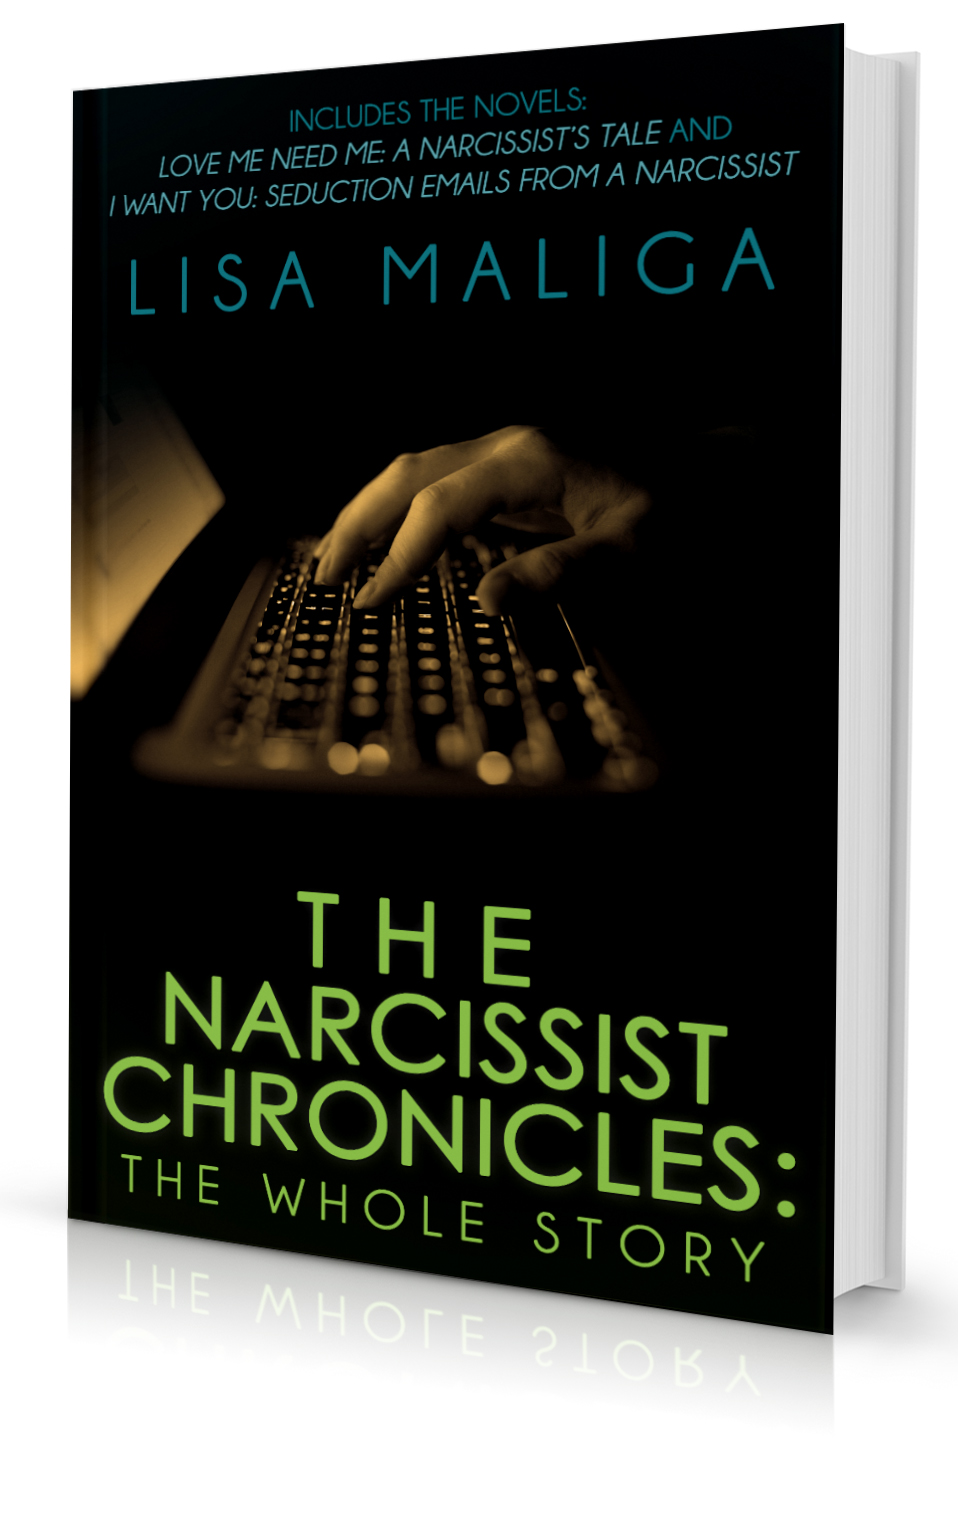 narcissist chronicles love me need me a narcissist's tale i want you seduction emails from a narcissist lisa maliga